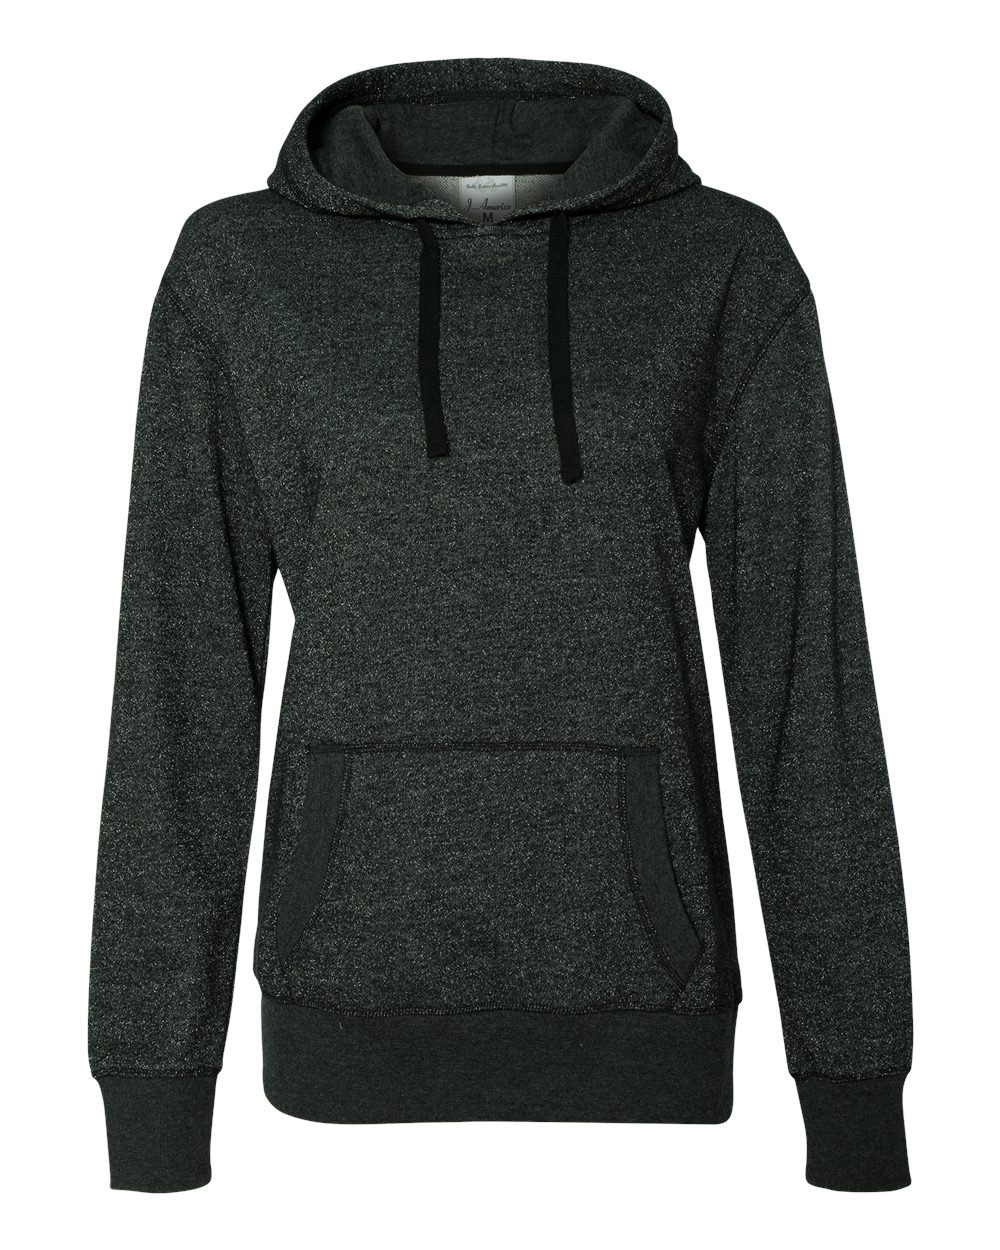 J. America Glitter French Terry Ladies Hoodie